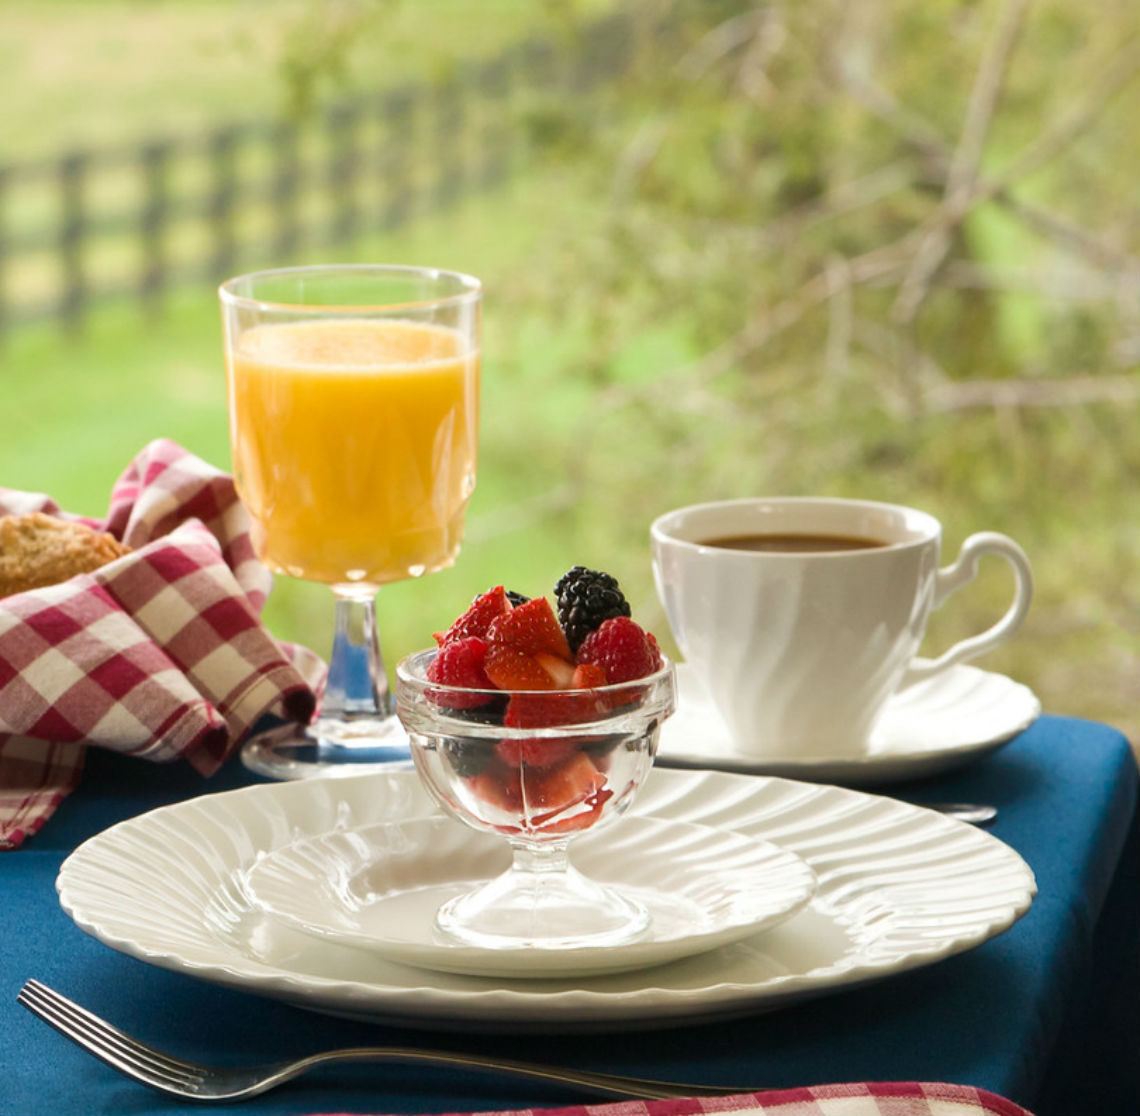 Cups of orange juice, coffee, and fruit sit on a breakfast table by an open window overlooking green fields